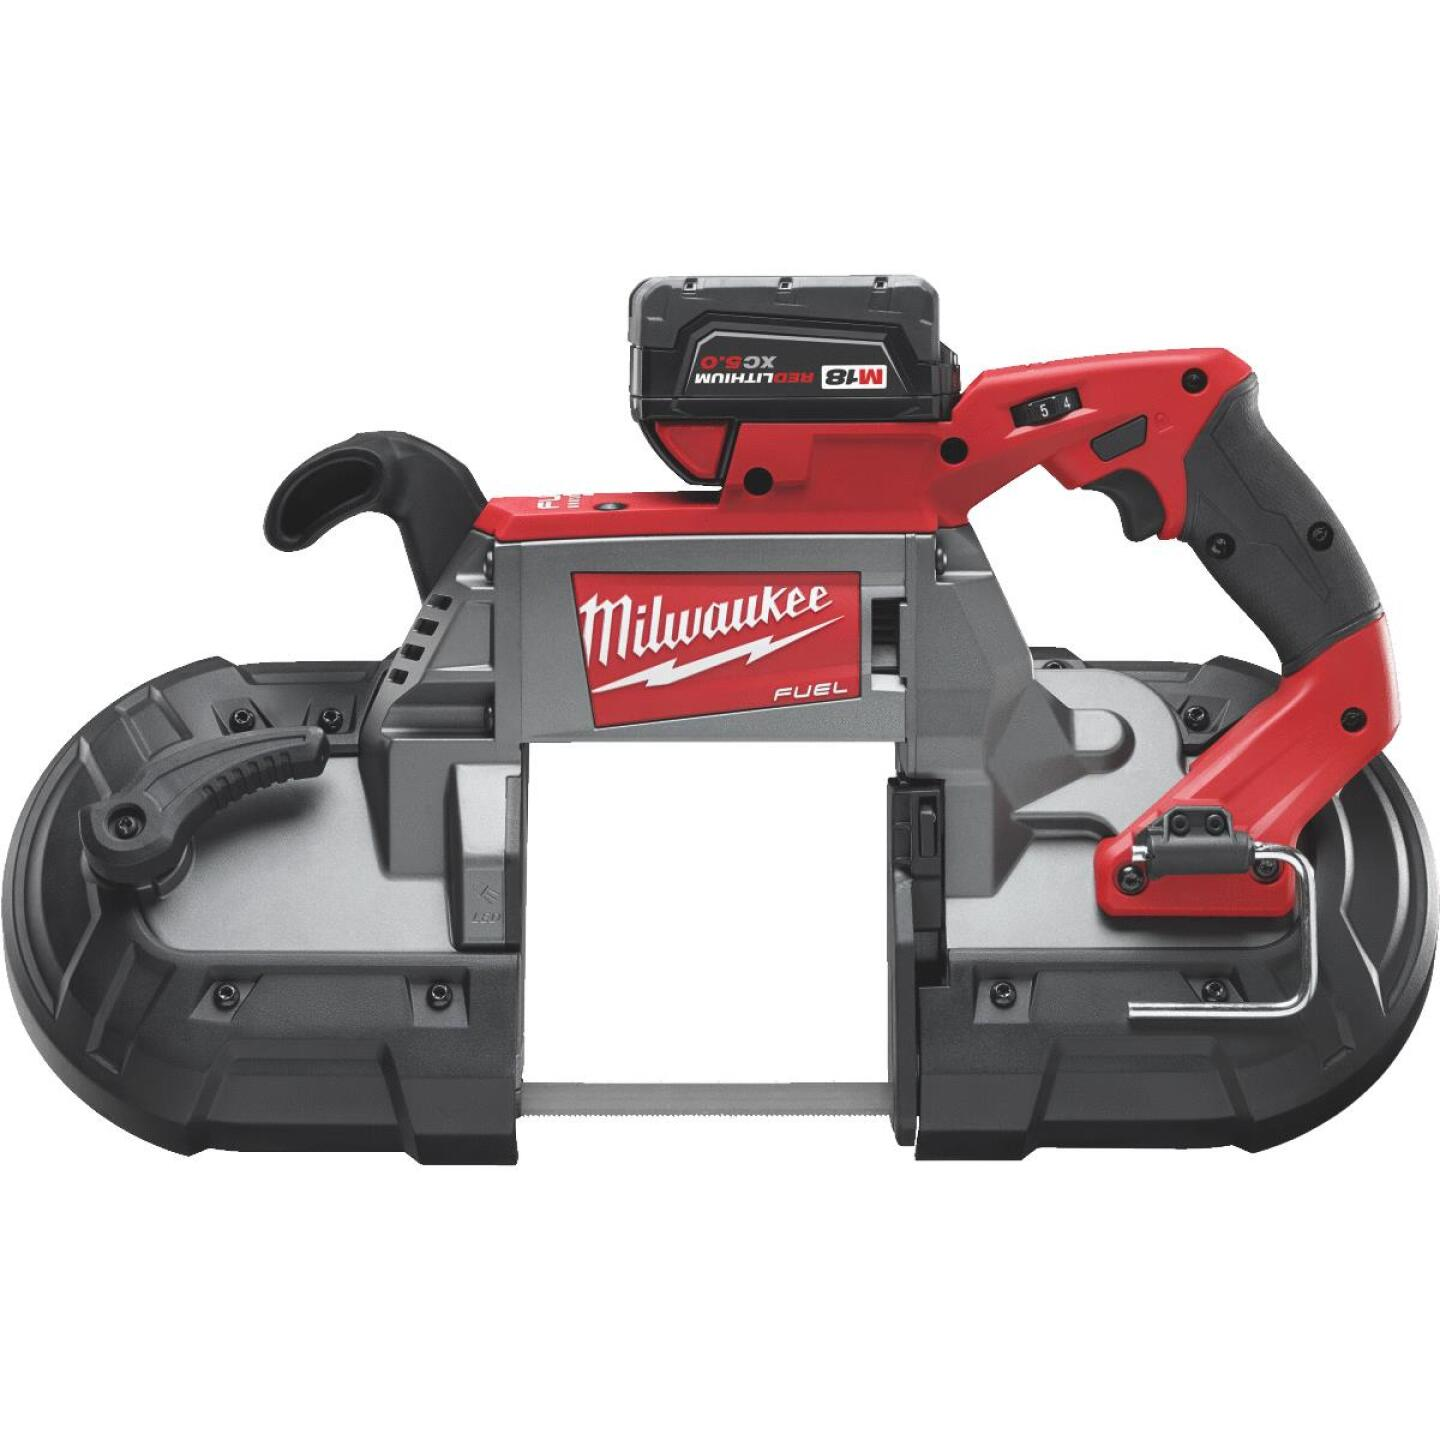 Milwaukee M18 FUEL 18 Volt Lithium-Ion Brushless Deep Cut Cordless Band Saw Kit Image 1